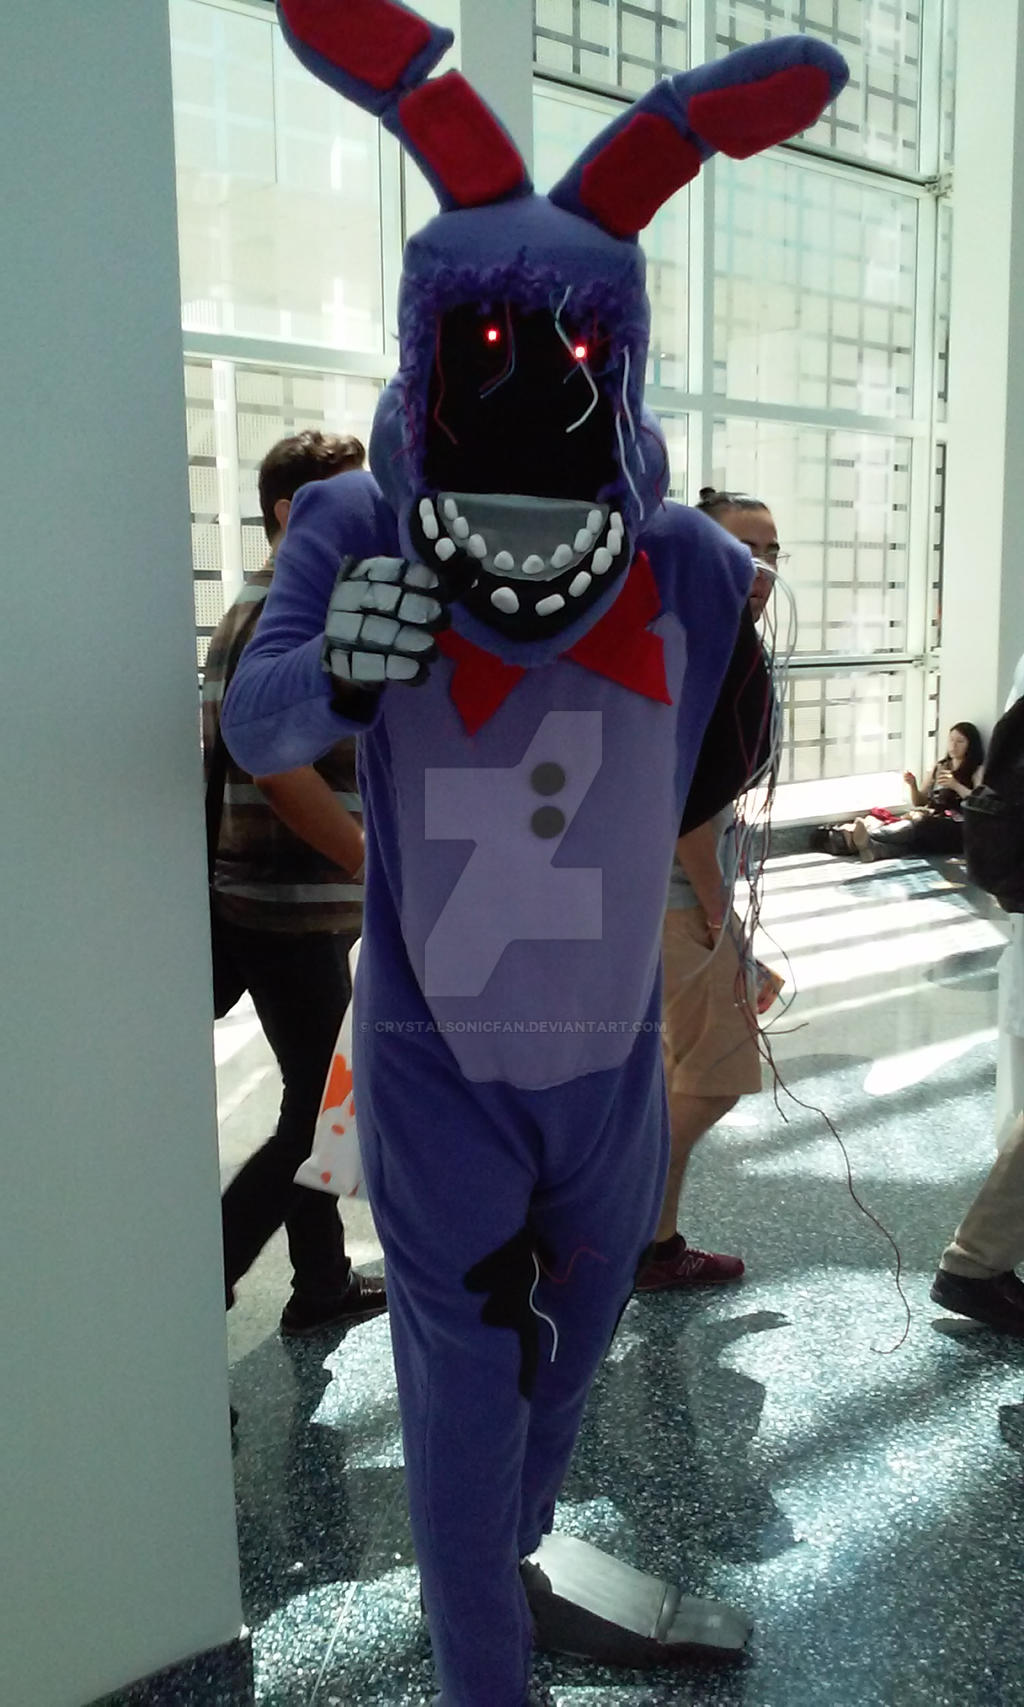 F fnaf bonnie costume for sale - Withered Bonnie Costume